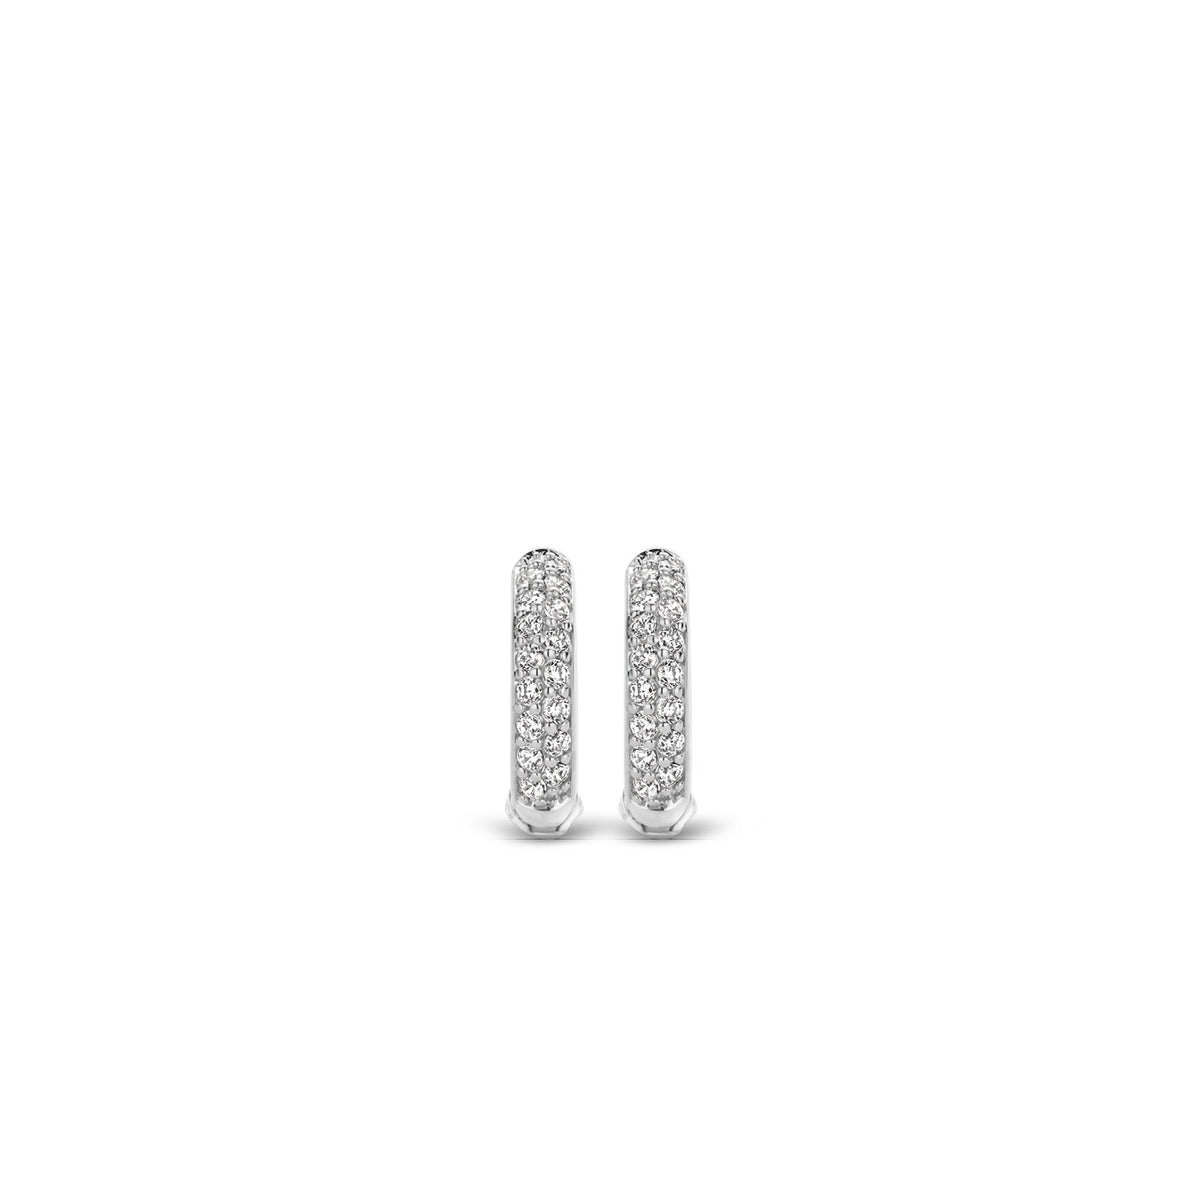 TI SENTO Sterling Silver Two Row Pave Set Cubic Zirconia Huggie Earrings